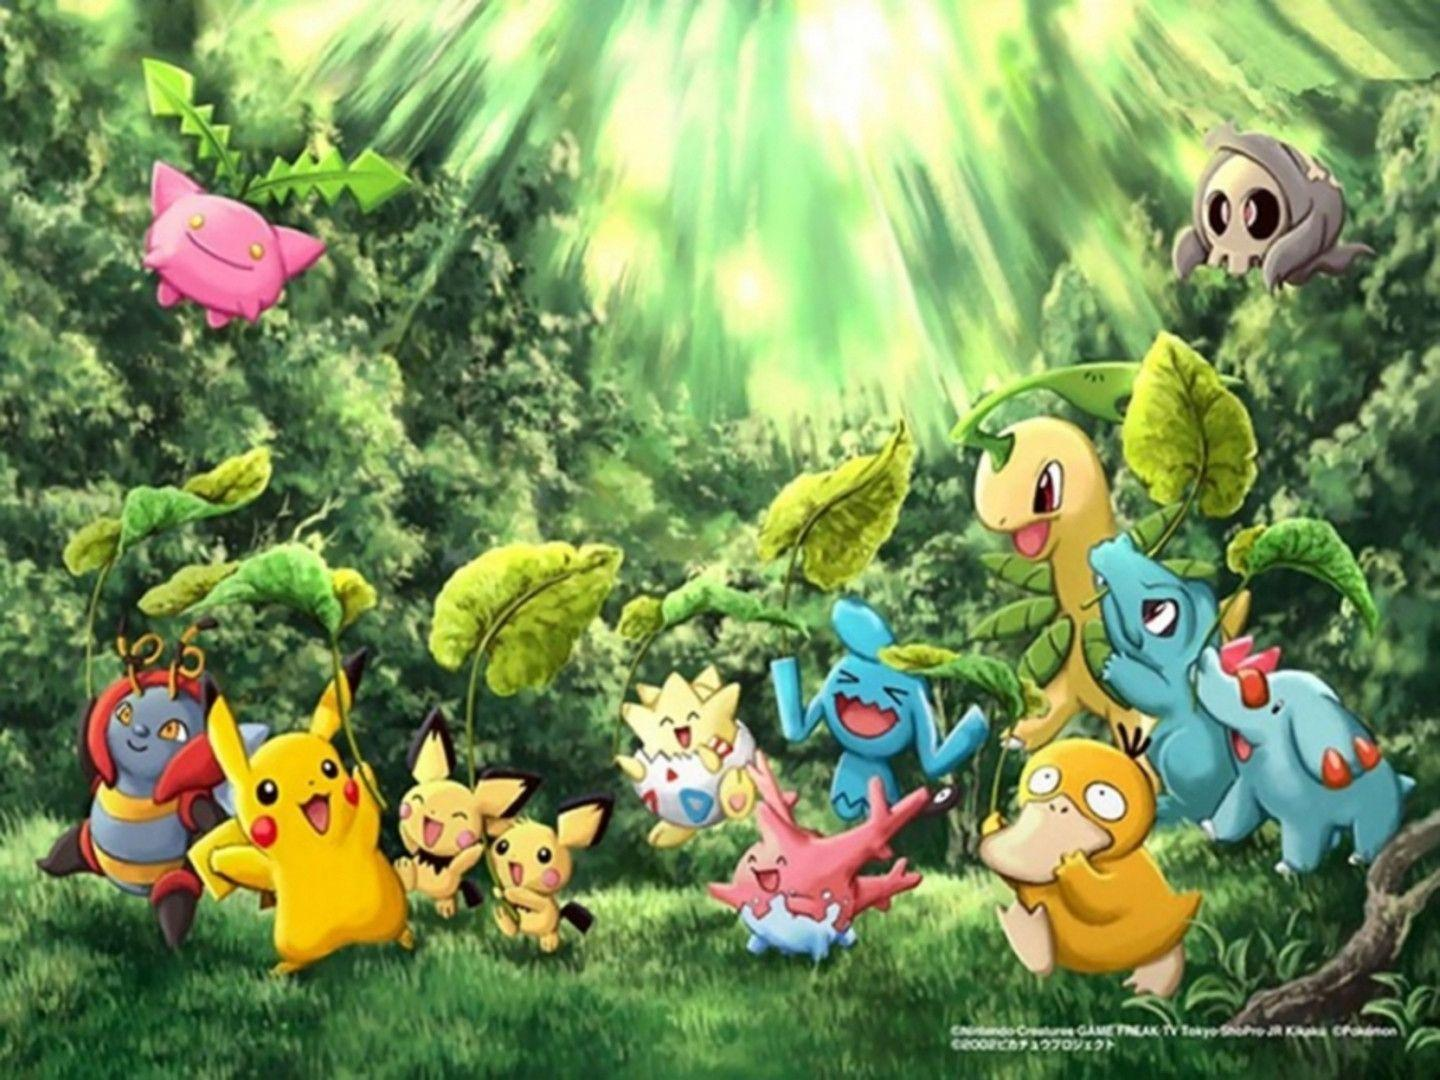 Pokemon HD Wallpapers 1080P Widescreen | HD Wallpapers Source